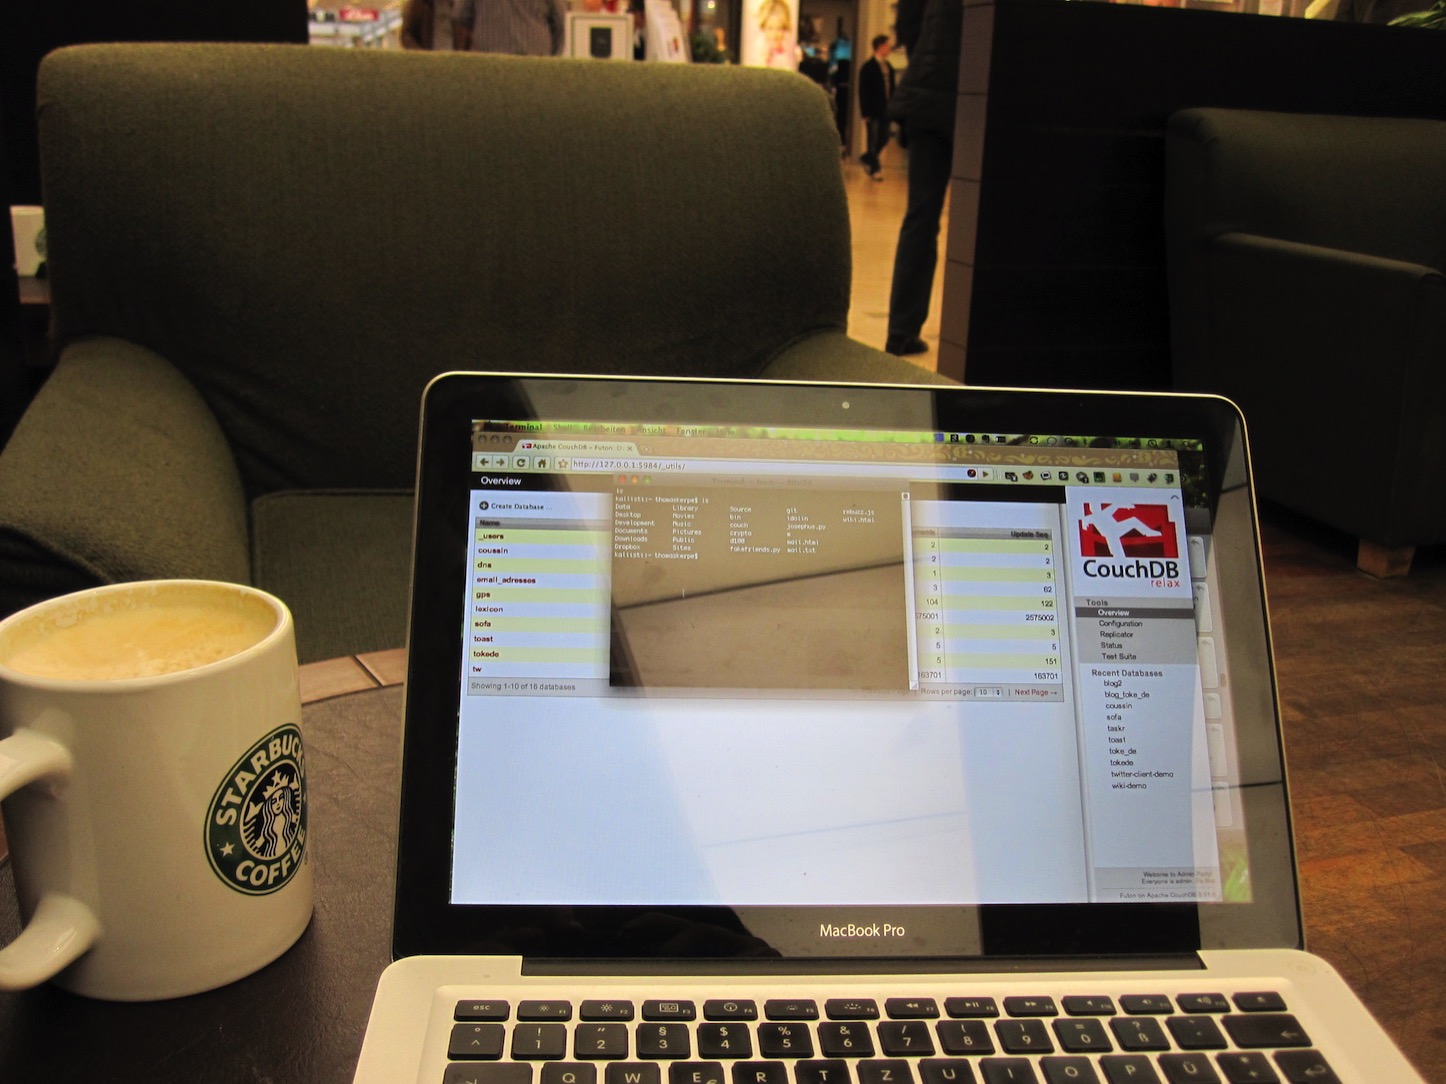 Macbook and coffee